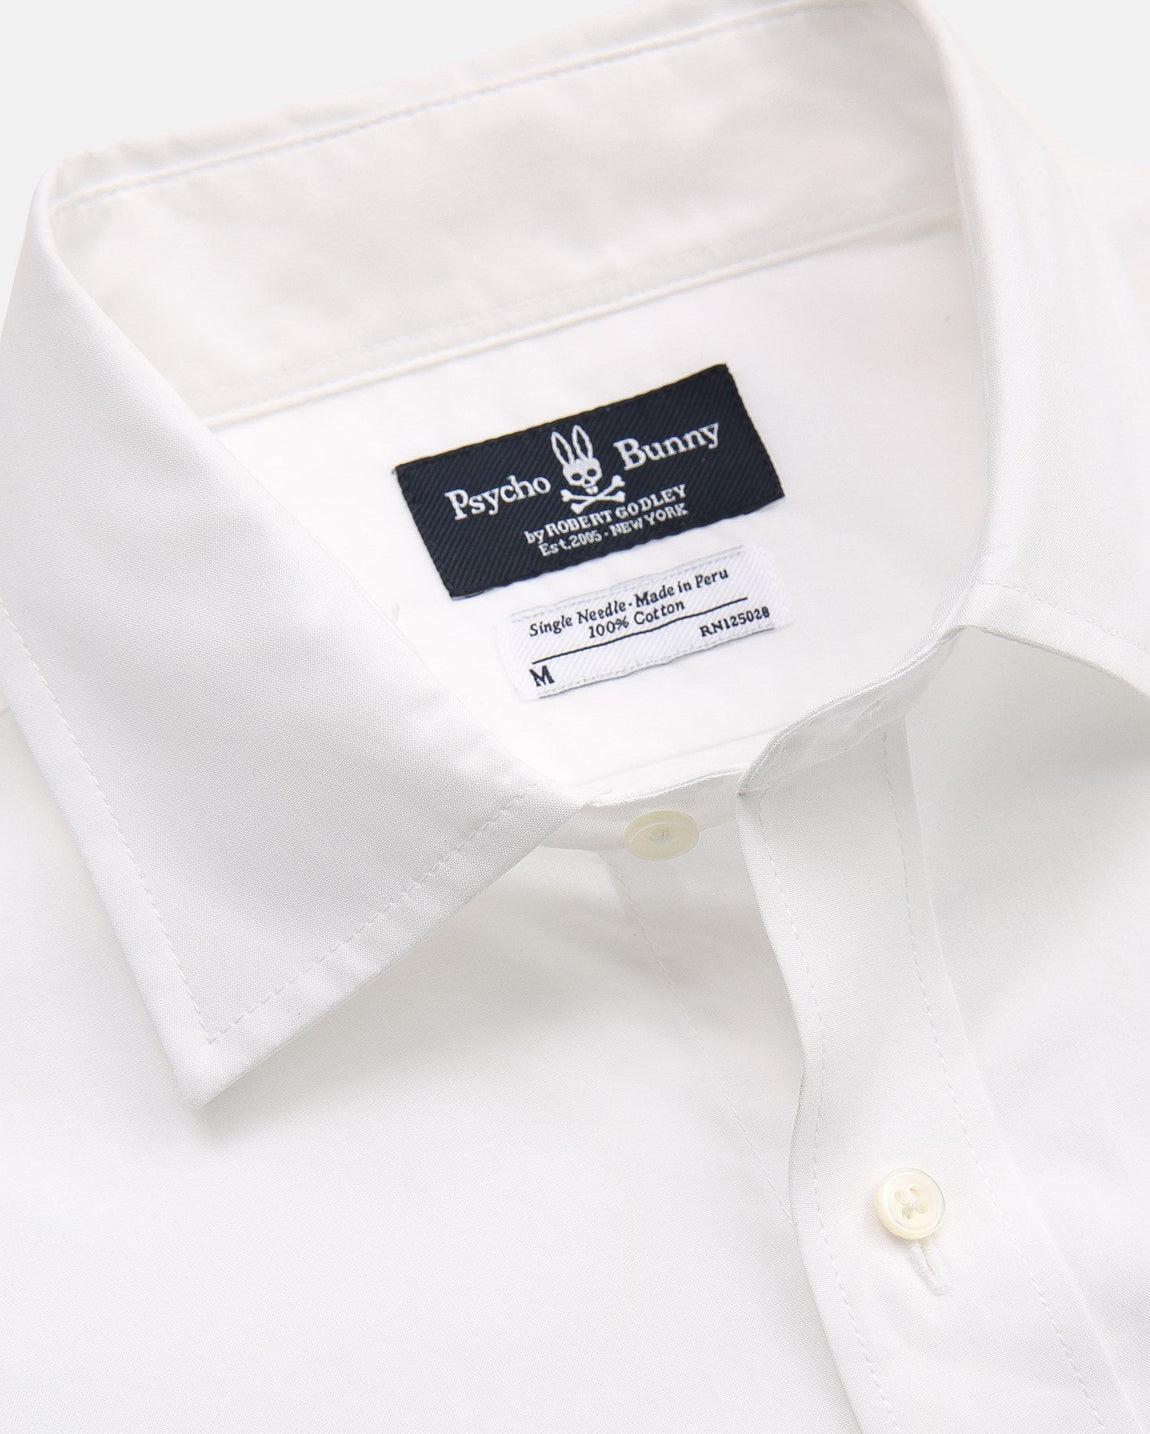 COTTON POPLIN SPORT SHIRT - B6C286CRPC - WHITE (WHT)